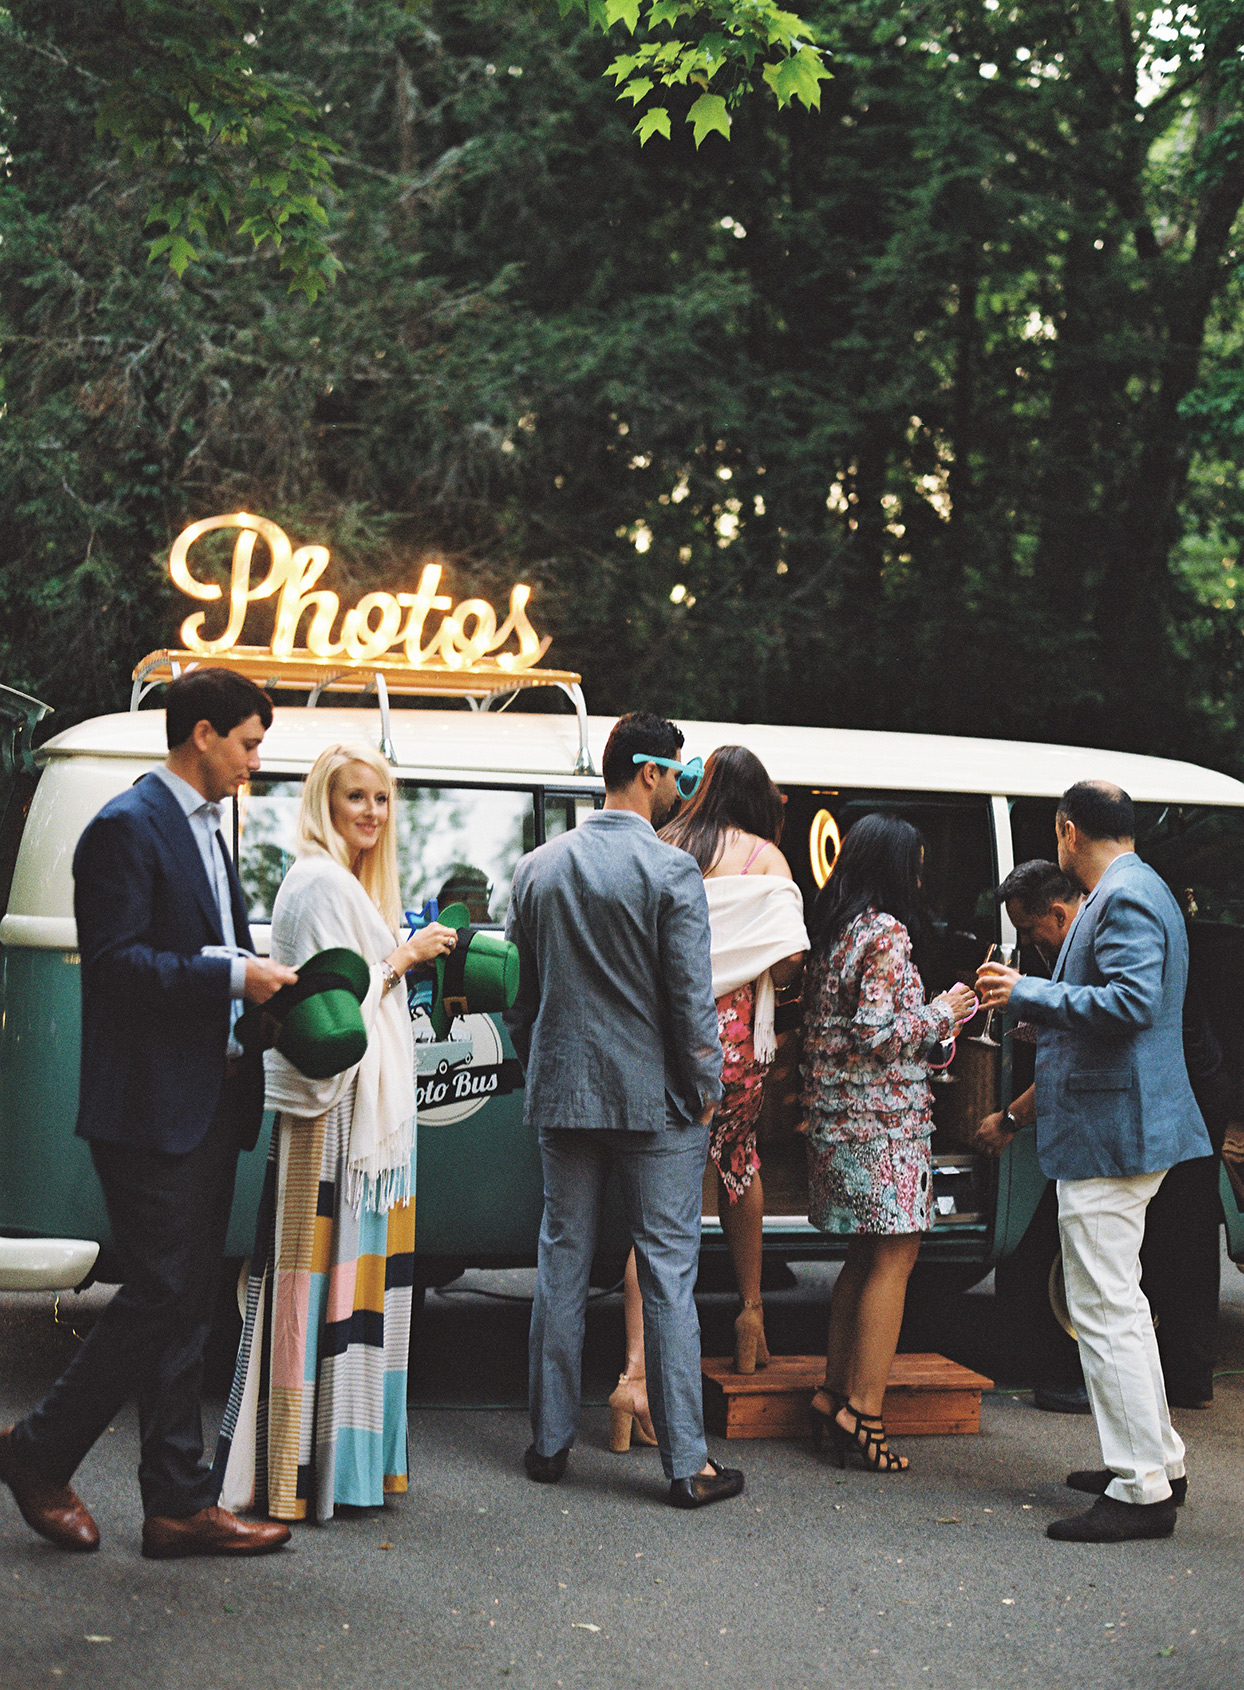 guests getting in photo booth van at welcome party